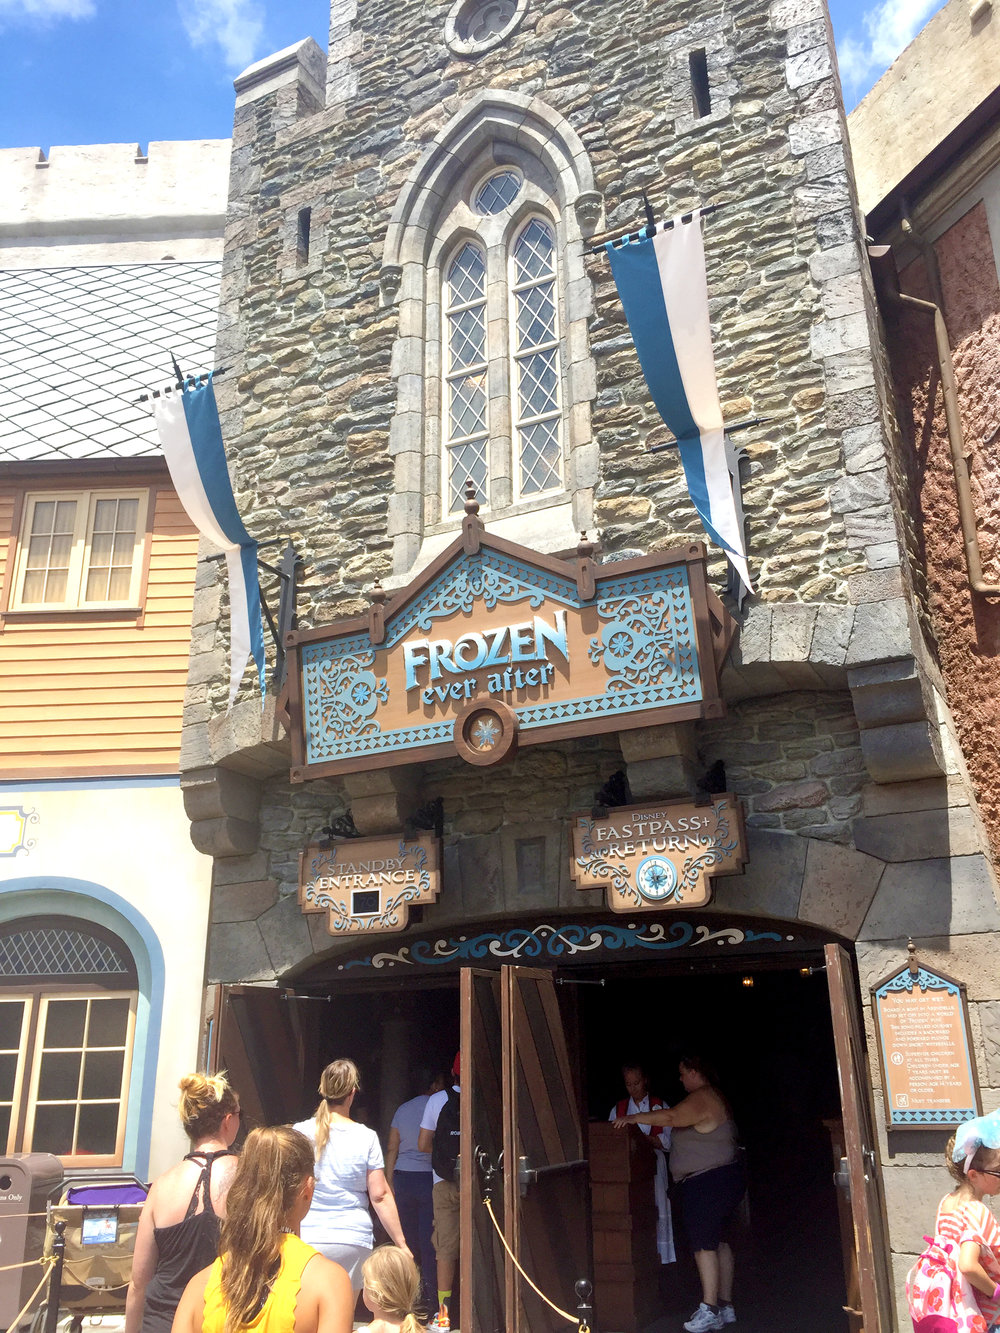 With the giant success of Frozen, Disney was quick to add a Frozen themed ride, but since the movie still remains very popular, the ride's line is typically very long!